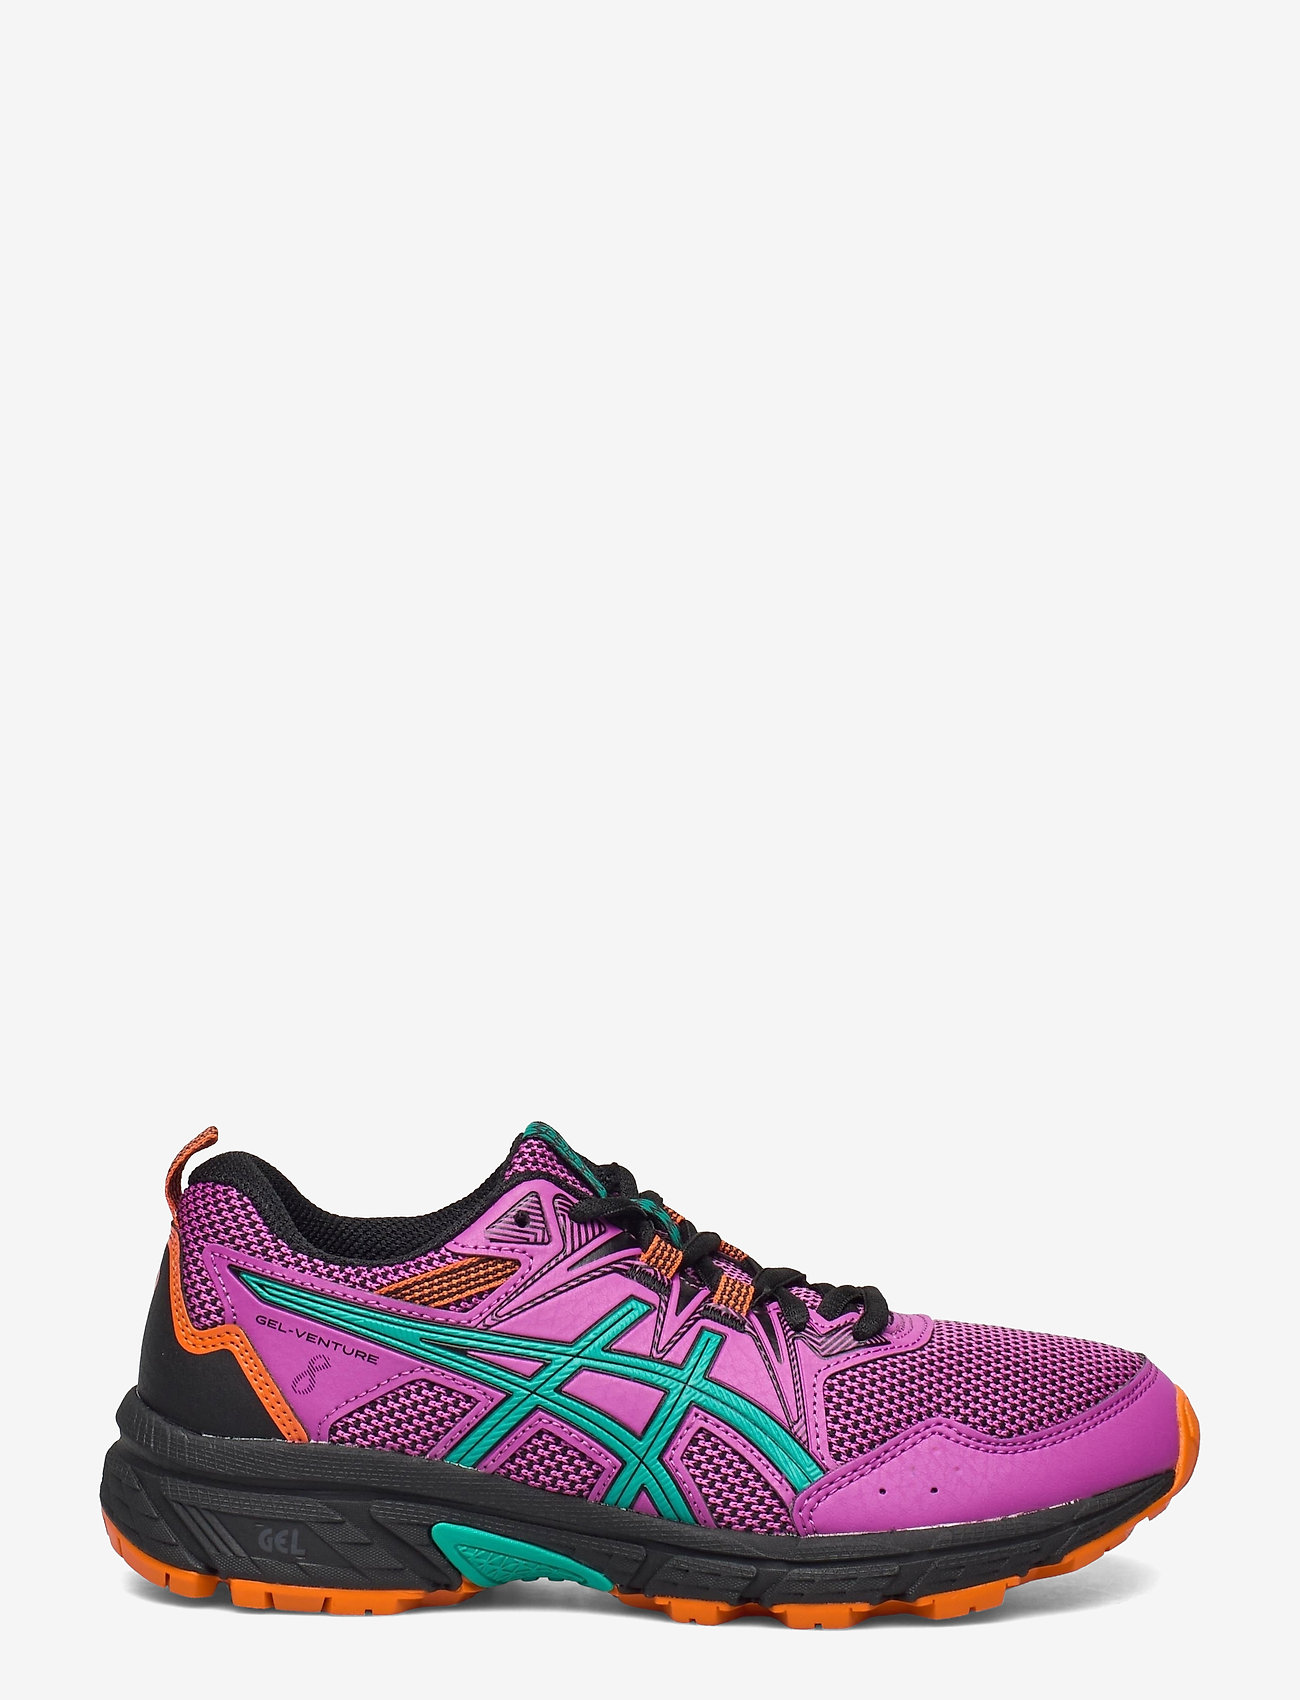 Asics - GEL-VENTURE 8 GS - trainingsschuhe - digital grape/baltic jewel - 1